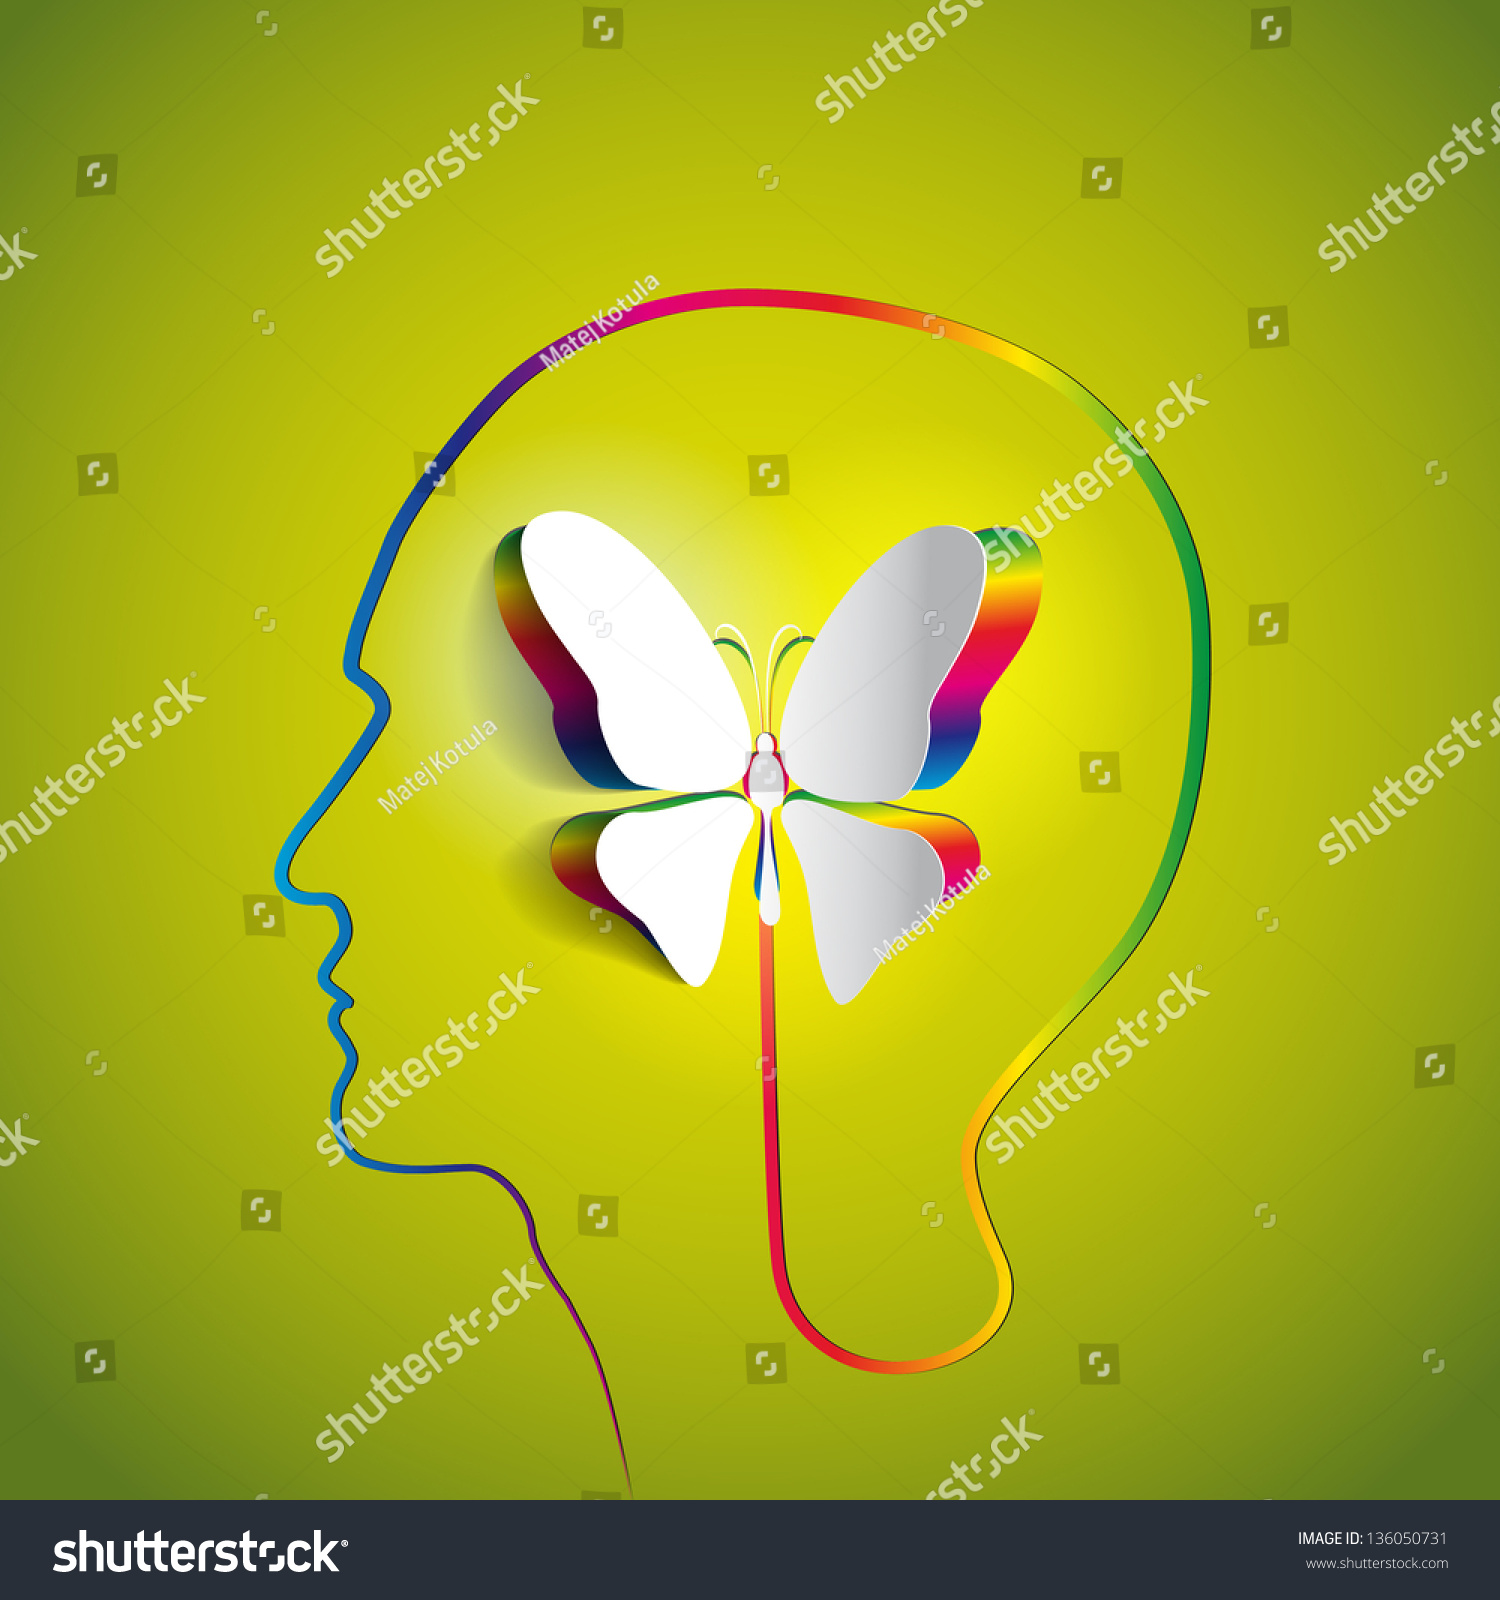 Human head paper butterfly symbol freedom stock vector 136050731 human head with paper butterfly symbol freedom and creativity design concepts biocorpaavc Image collections